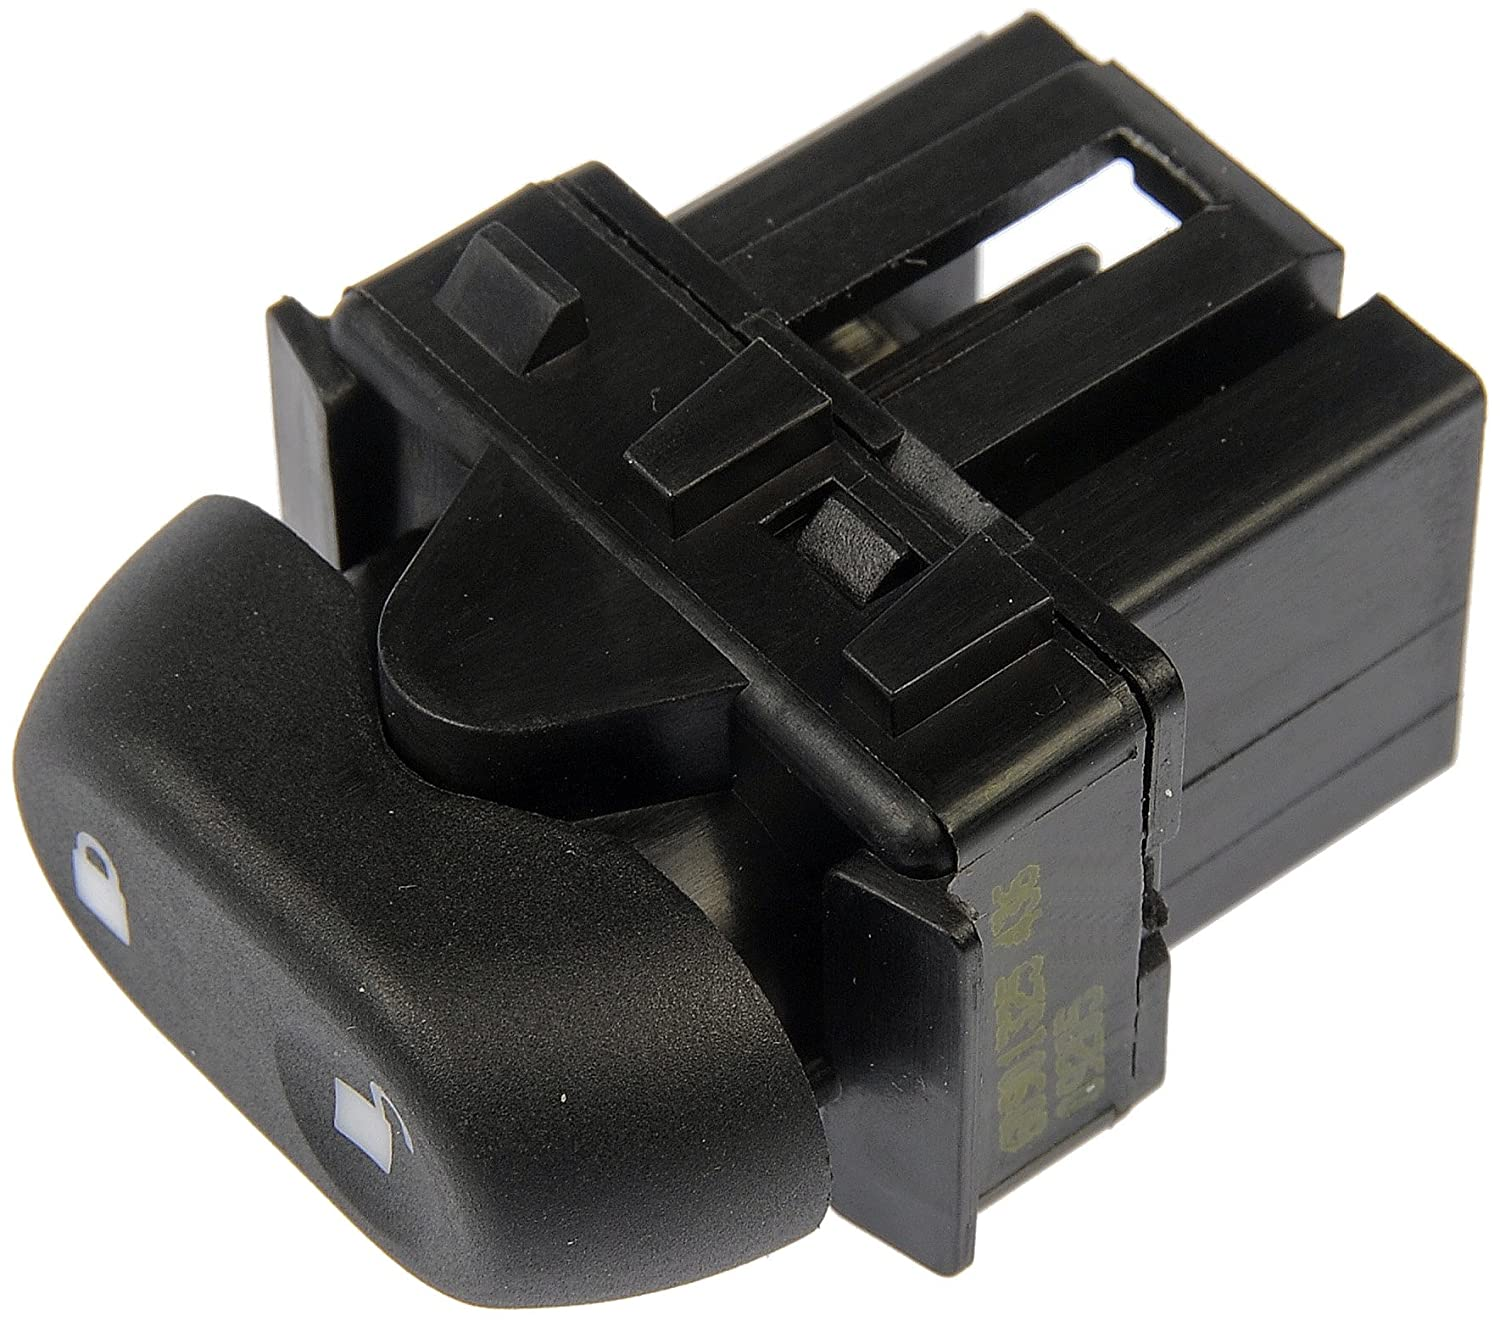 Dorman 901-325 Front Driver Side Replacement Door Lock Switch for Ford/Mercury Dorman - OE Solutions